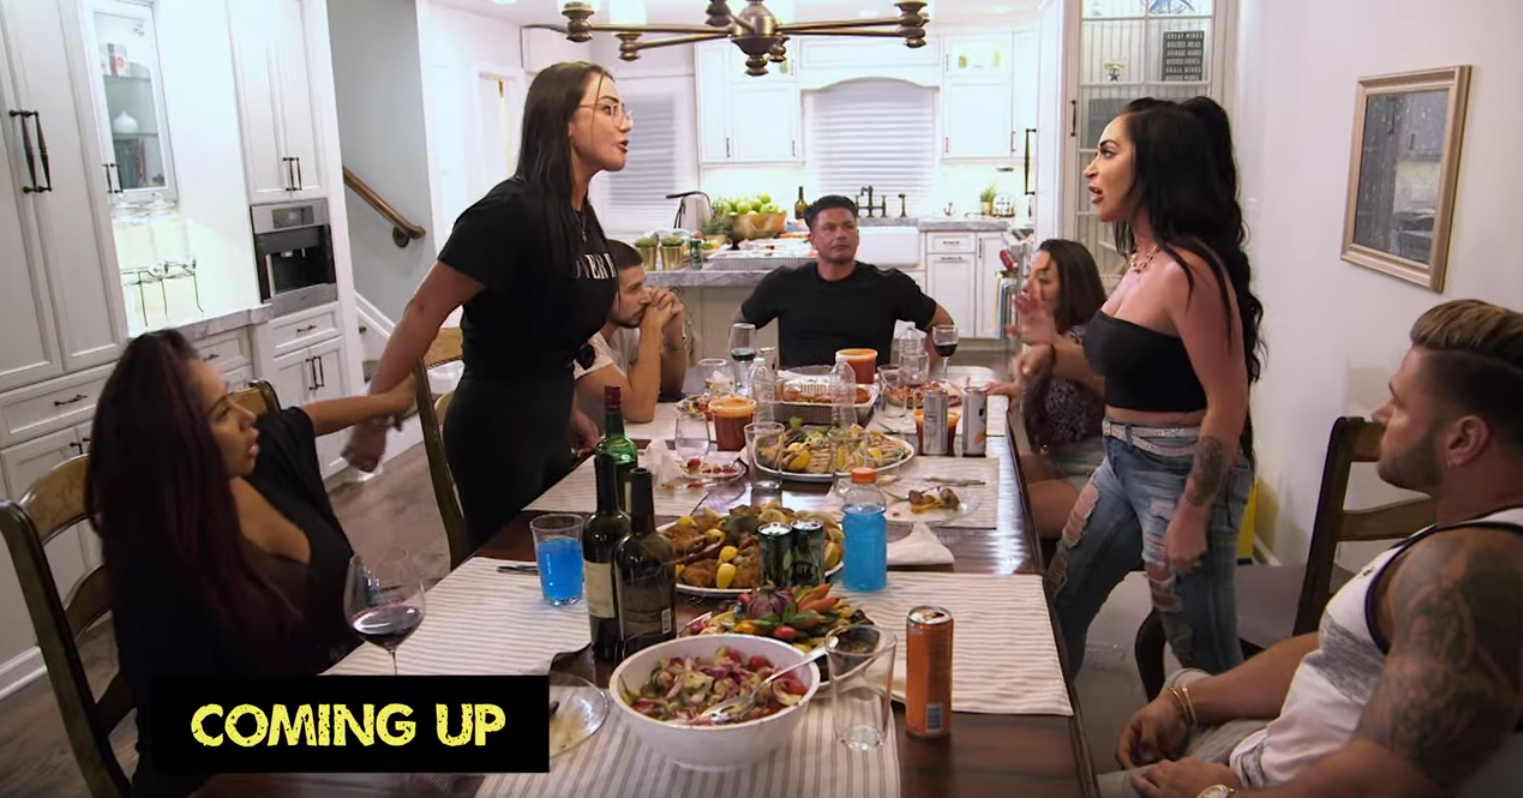 Jersey-Shore's-Angelina-Pivarnick-Claims-Jenni-'JWoww'-Farley's-Boyfriend-Came-Onto-Her-1